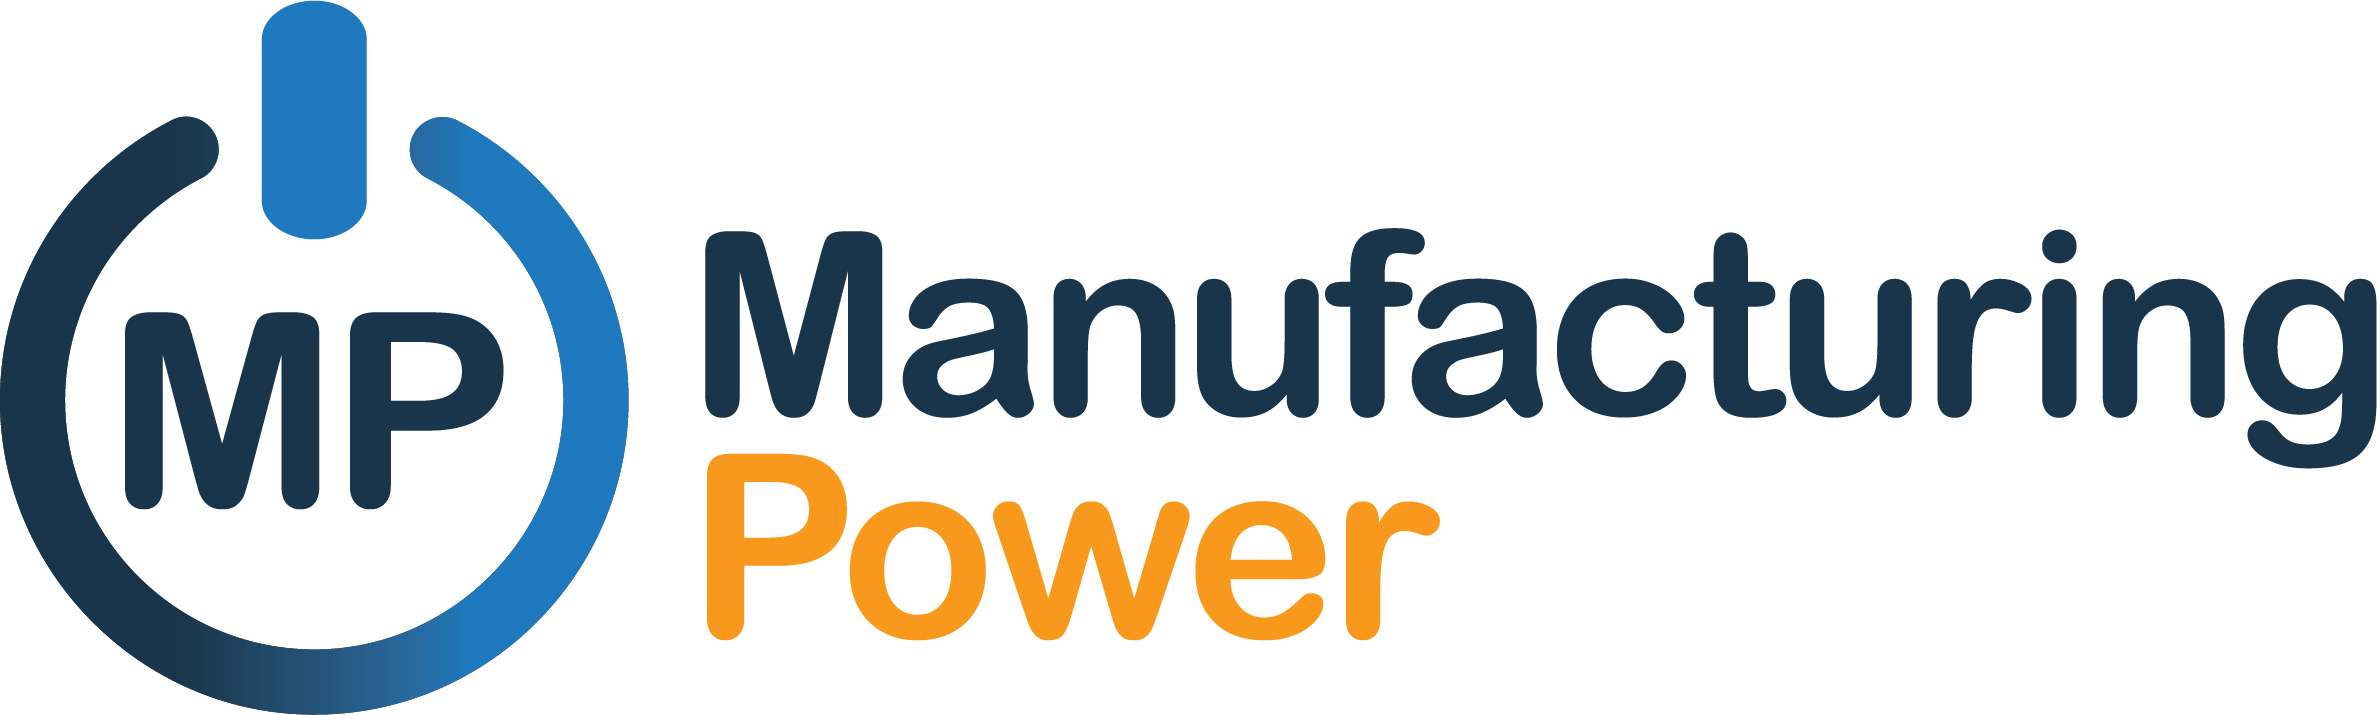 Mike Franz Helps Small Manufacturers Compete with ManufacturingPower Solution